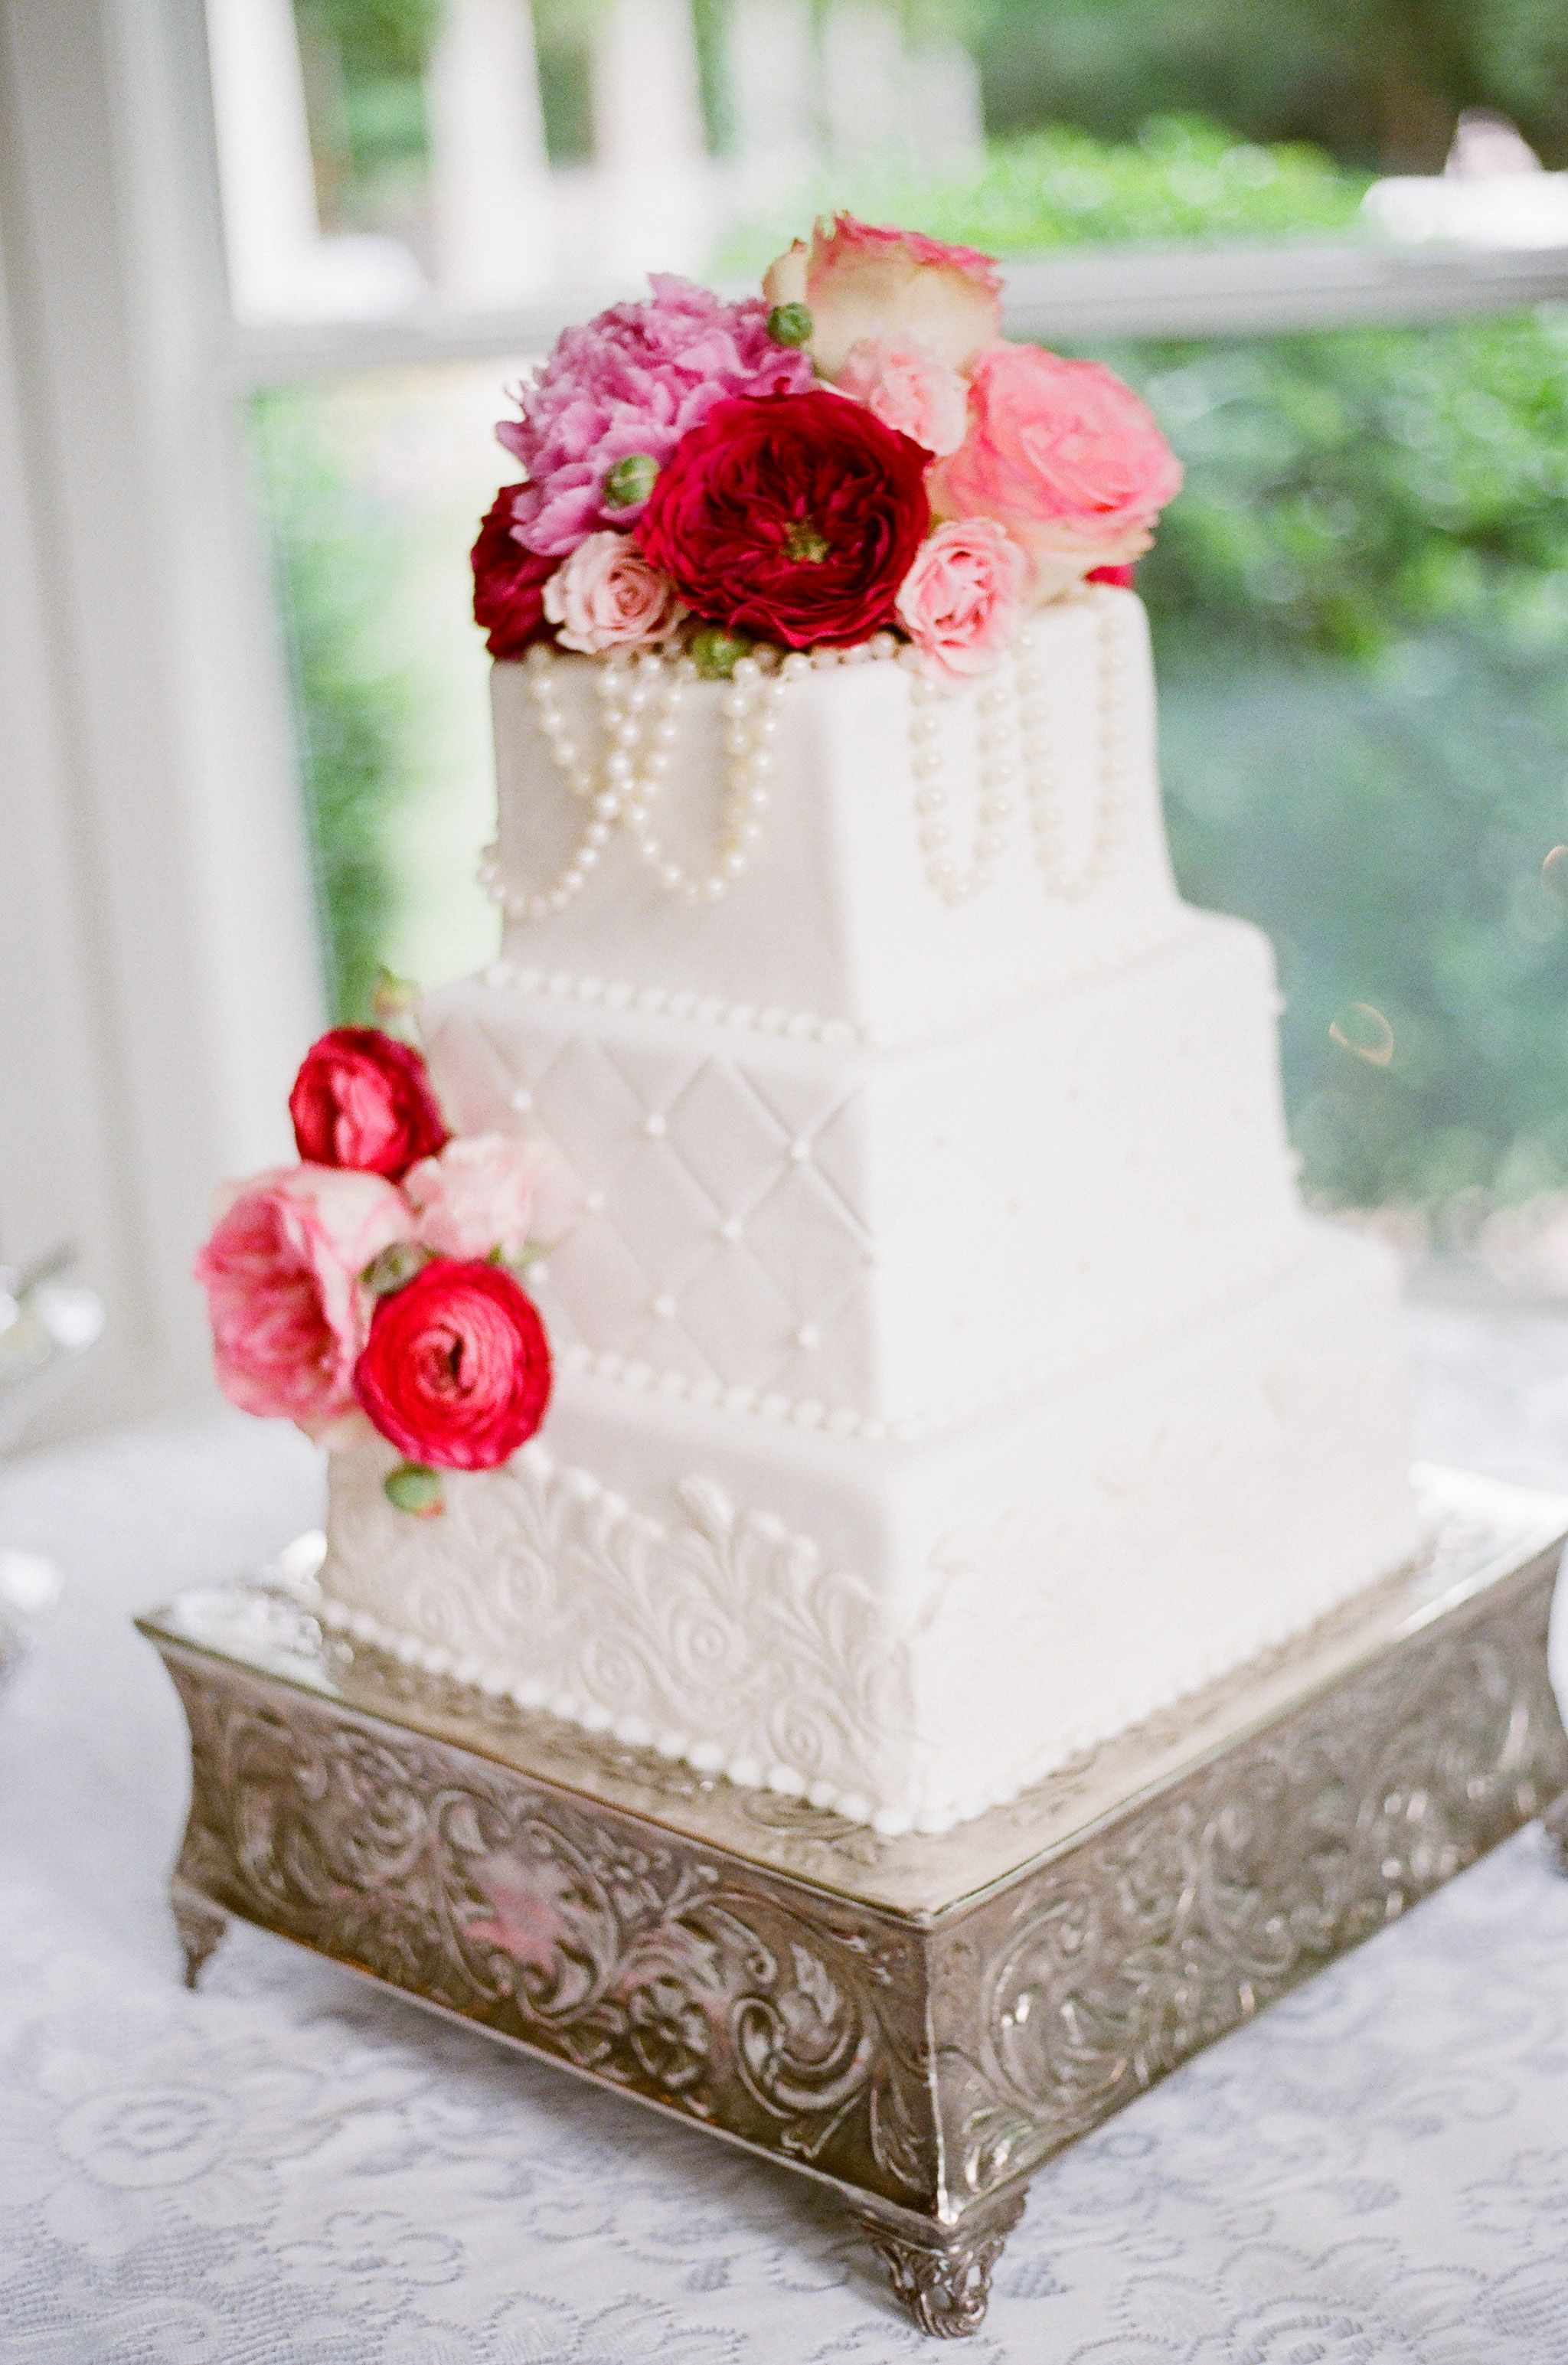 Vintage/Romantic Wedding Cake (Amaretto Flavored) | Our Shabby Chic ...